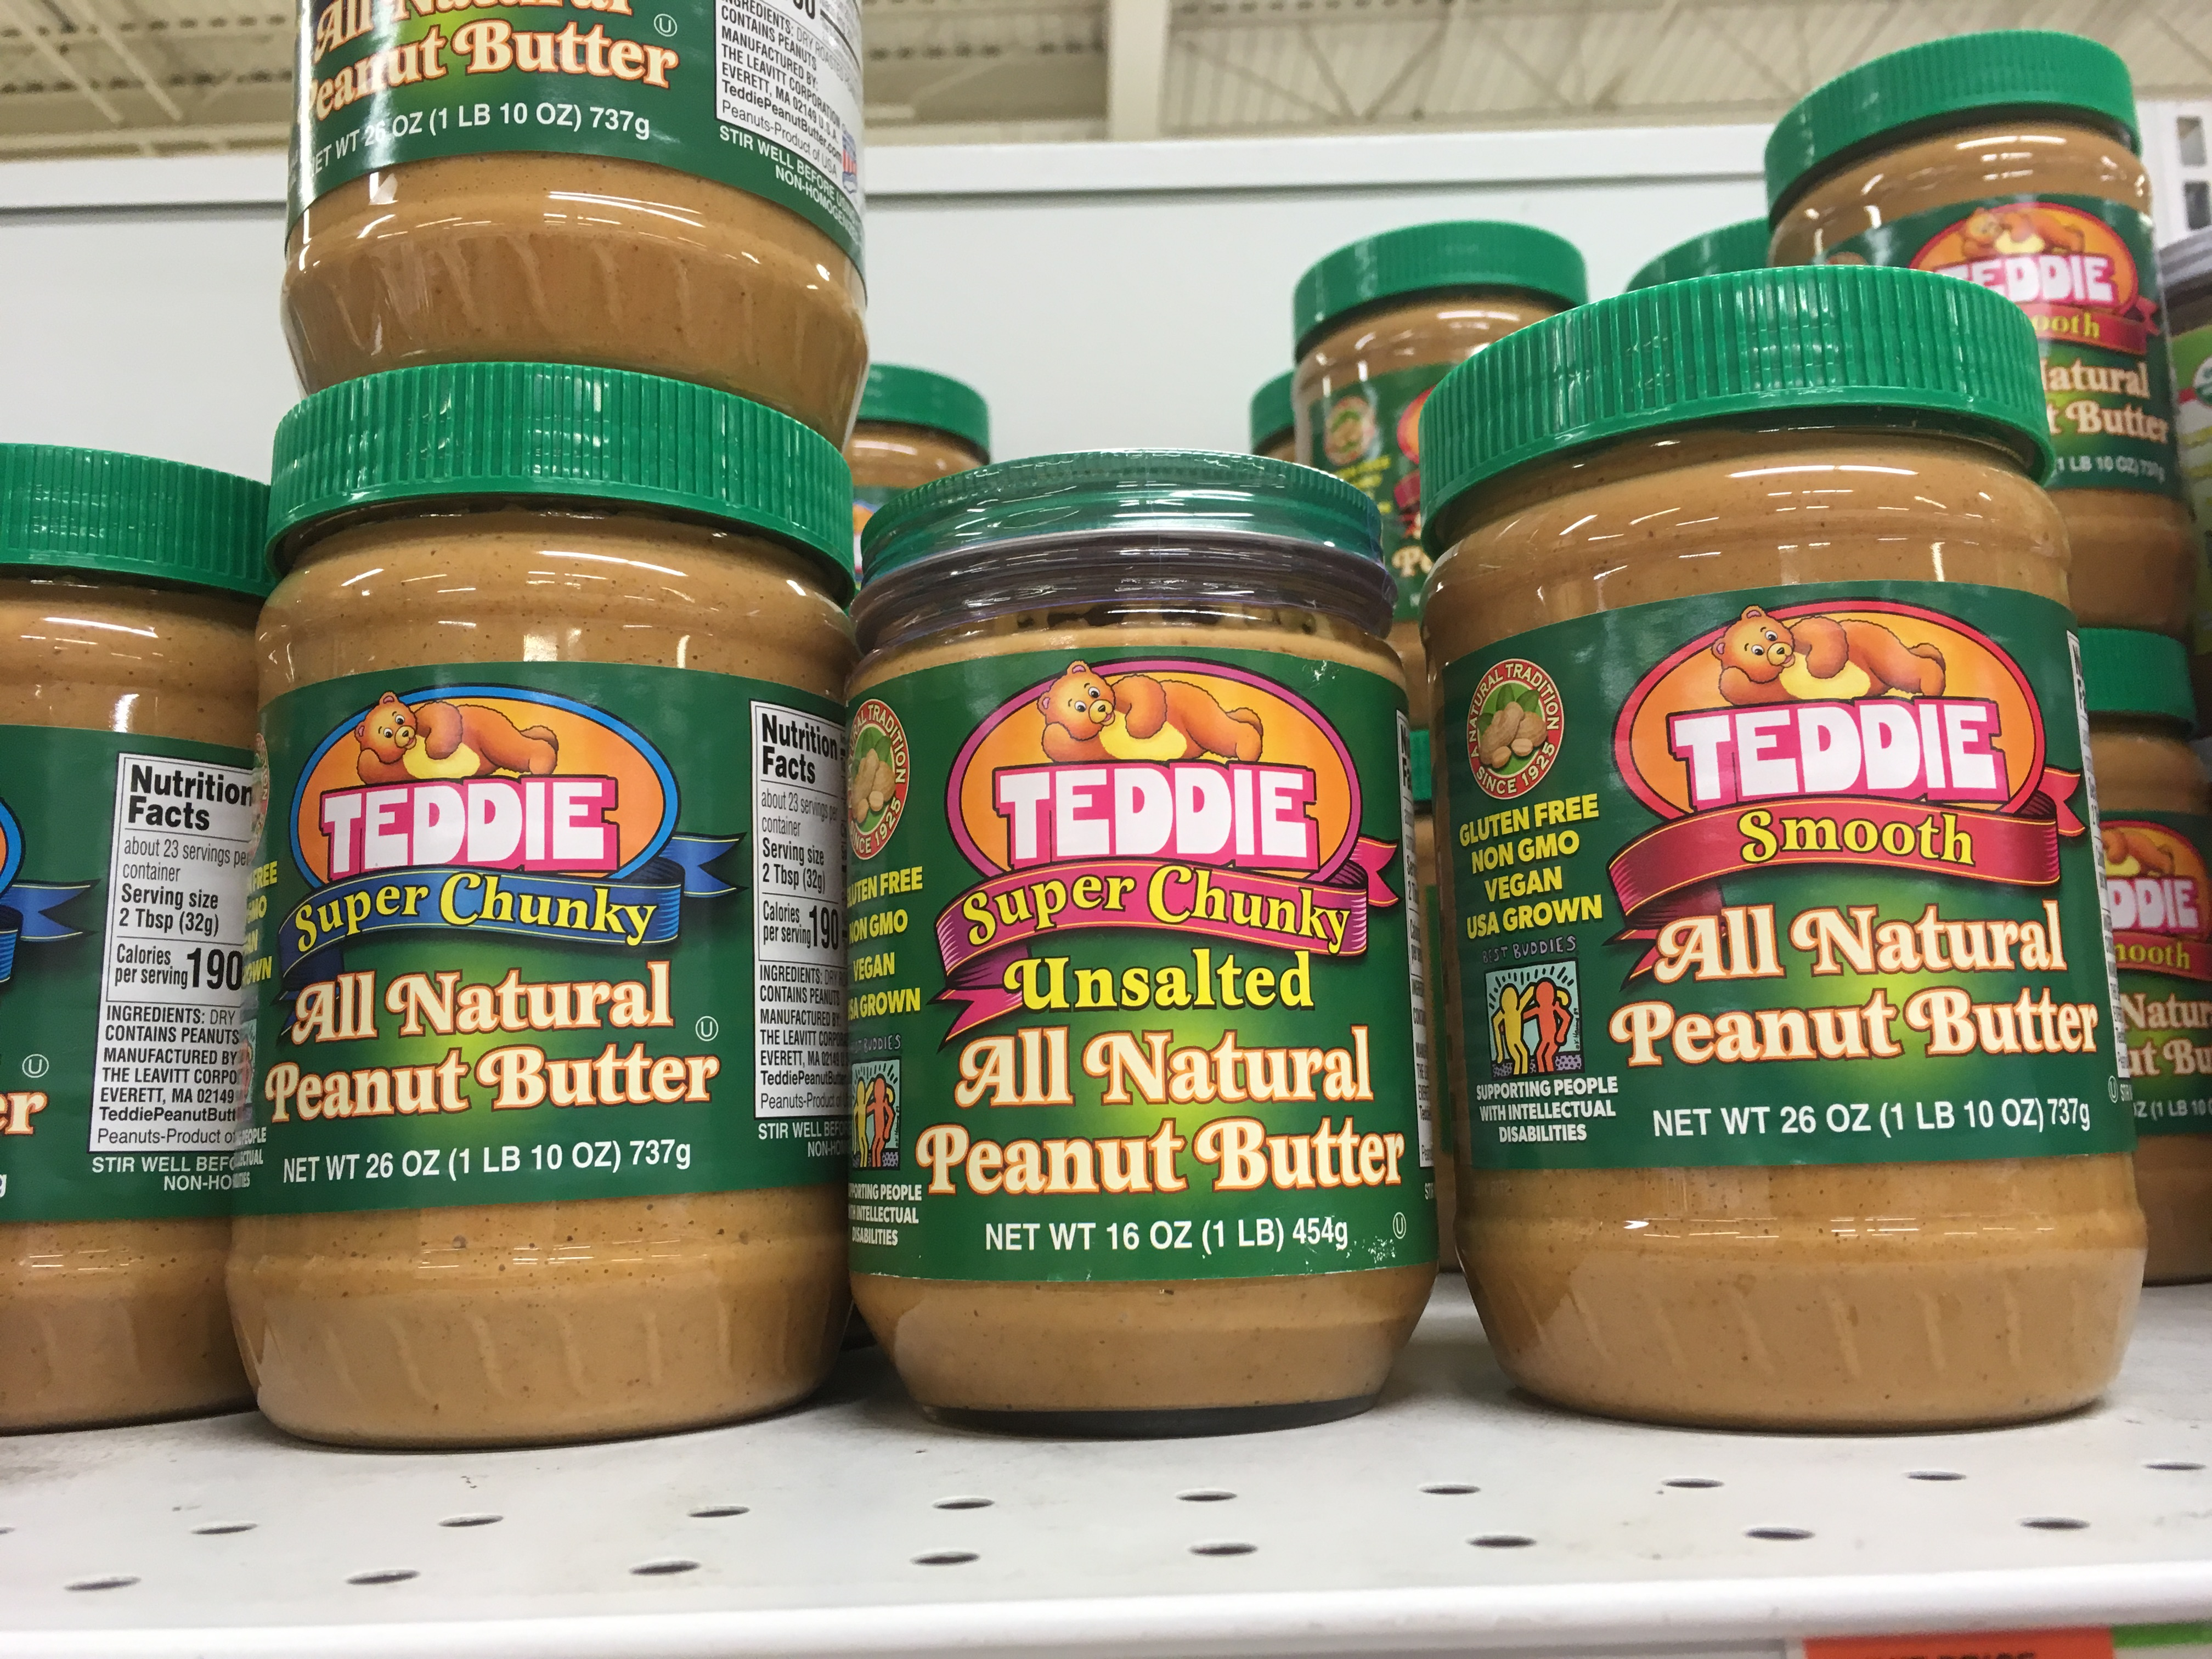 why I bought the wrong peanut butter...